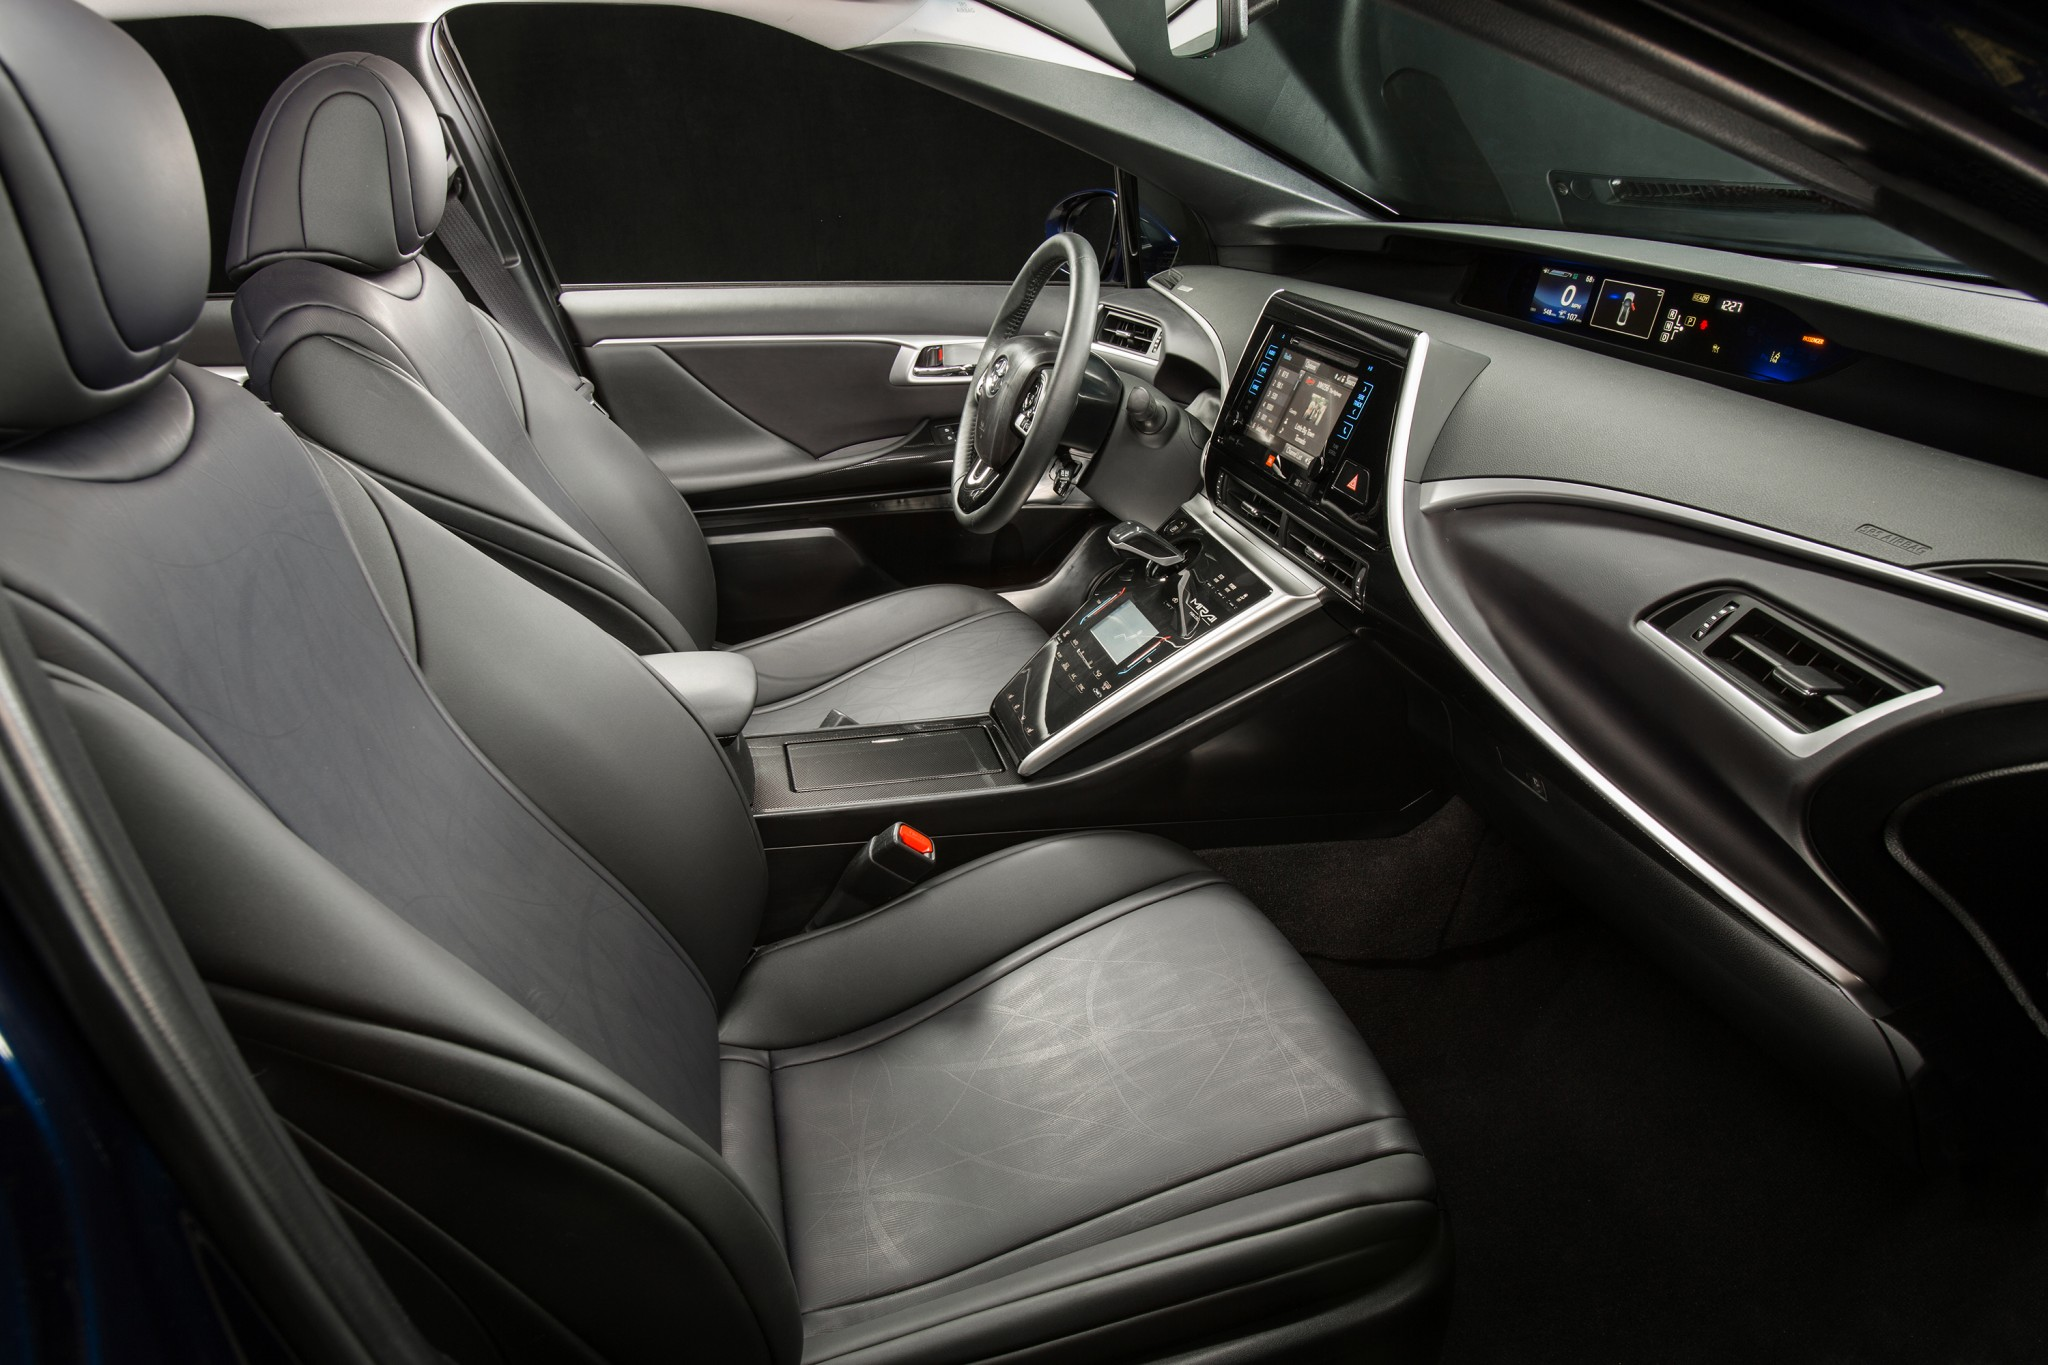 2016 Toyota Mirai Fuel Cell Back to the Future Again NerdWallet